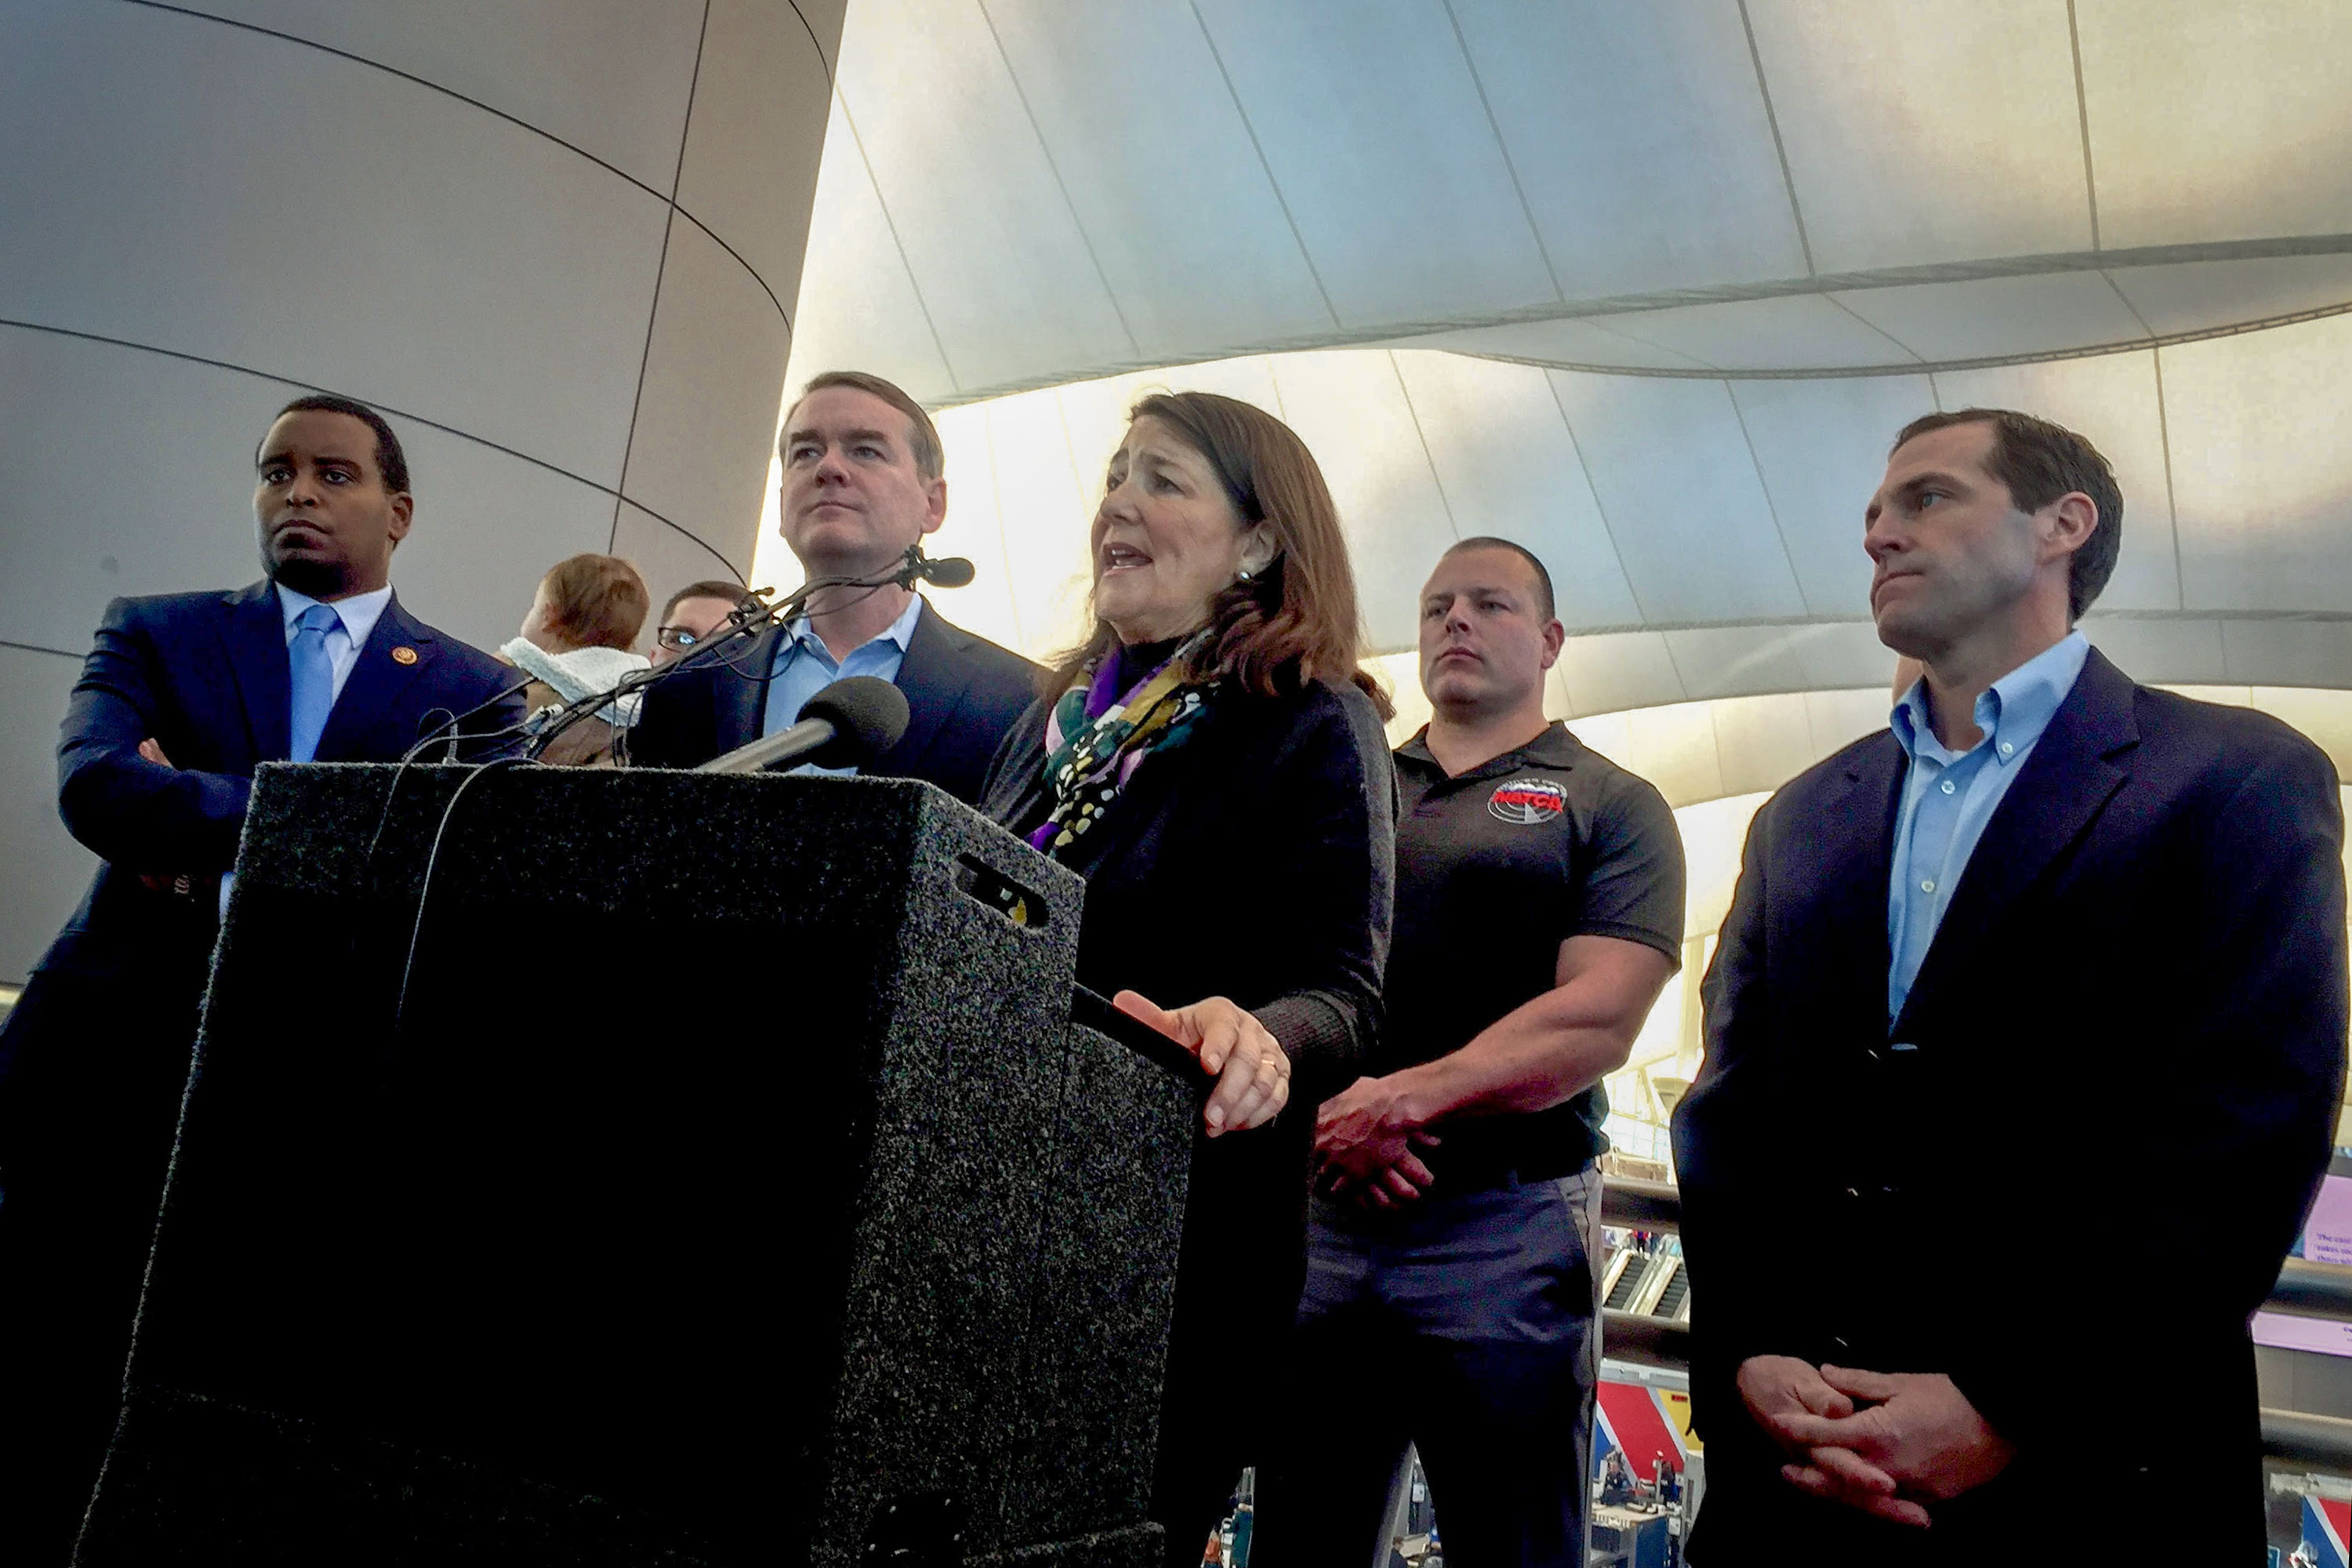 <p>Democrat Rep. Diana DeGette, flanked by Rep. Joe Neguse, Sen. Michael Bennet and Rep. Jason Crow,spoke at Denver International Airport to call for the end of the partial government shutdown, Jan. 14, 2019. Monday marked the 24th day of the shutdown.</p>